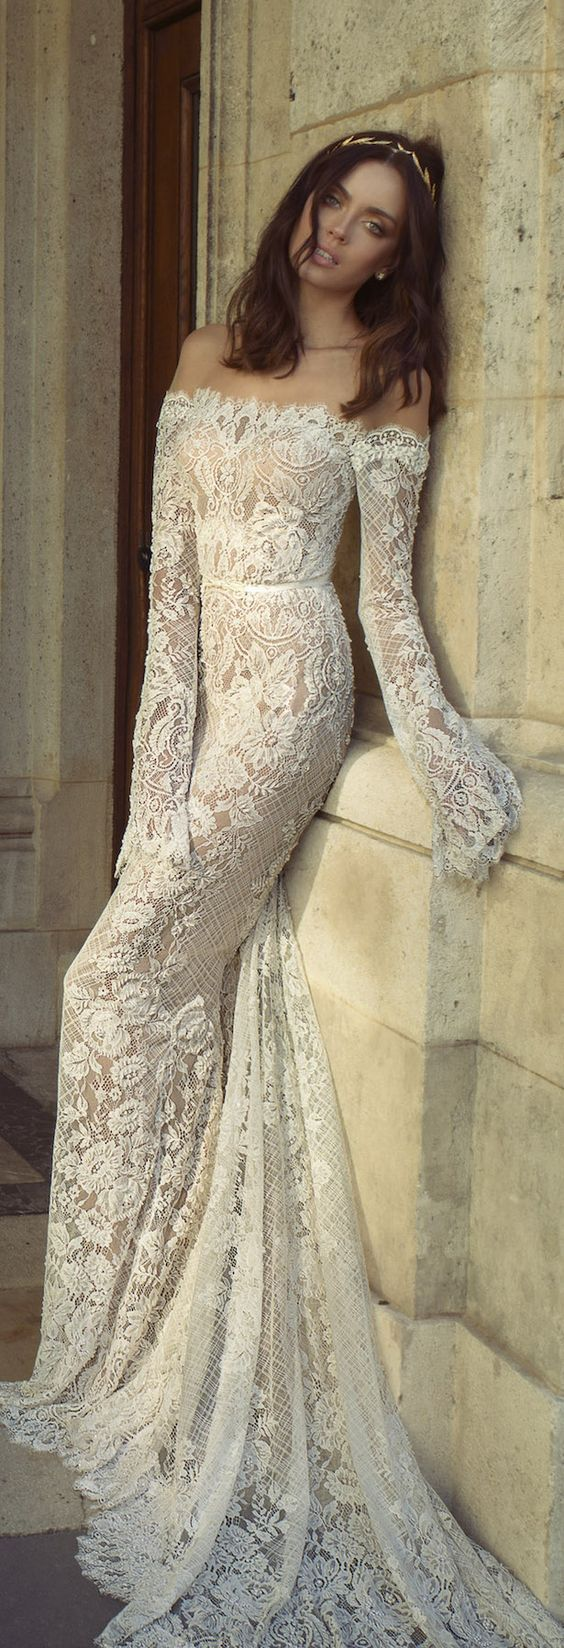 Vintage lace wedding dresses Lace wedding dresses and Lace weddings on Pinterest